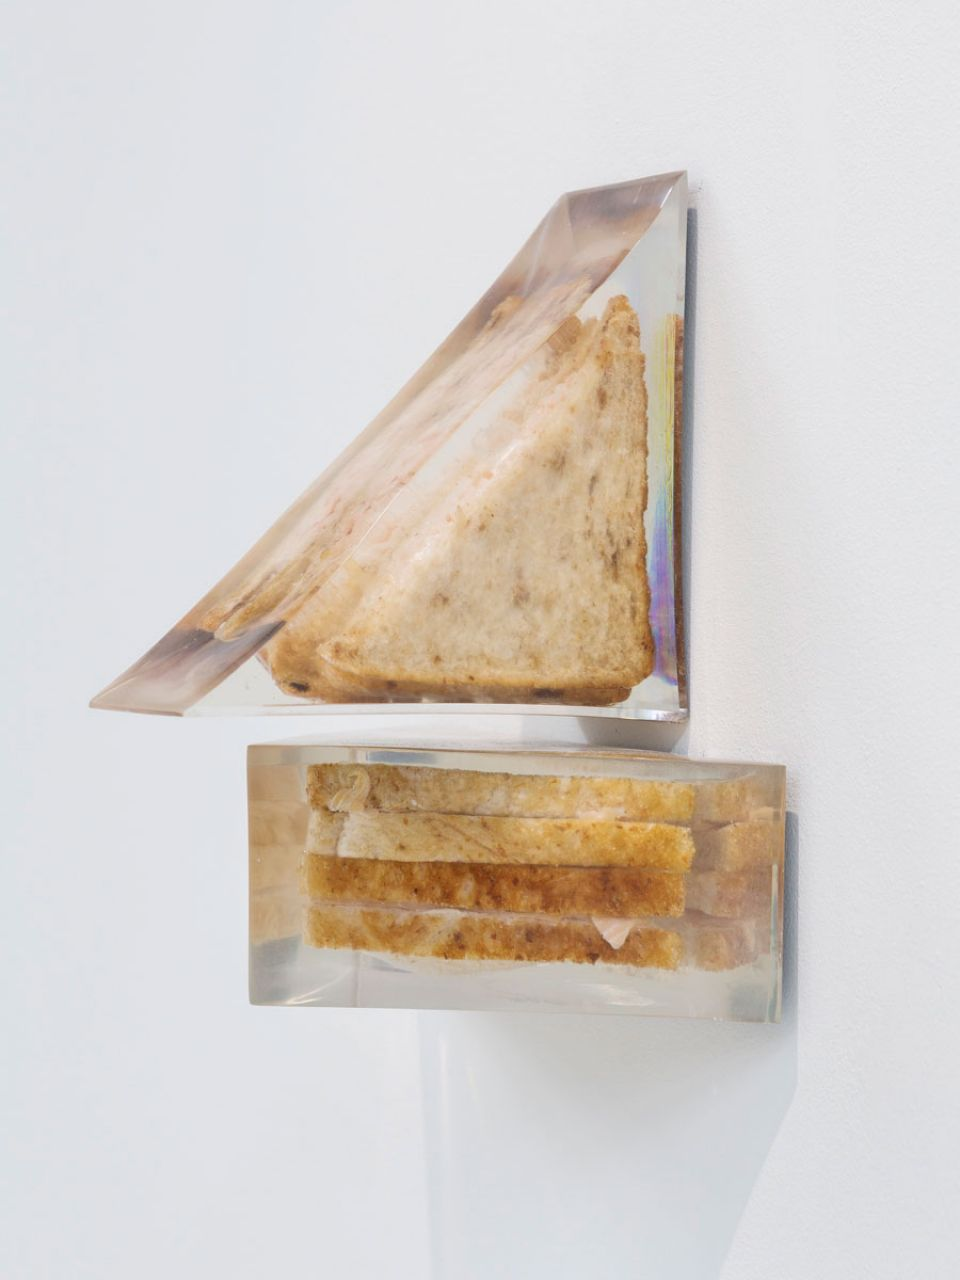 Alex Frost, Smoked Salmon and Soft Cream Cheese on BrownBread, No Mayo (Waitrose)/ Prawn Mayonnaise on Brown Bread (Tesco), 2017, ClearCast polyester resin, sandwiches and mirrored acrylic sheet